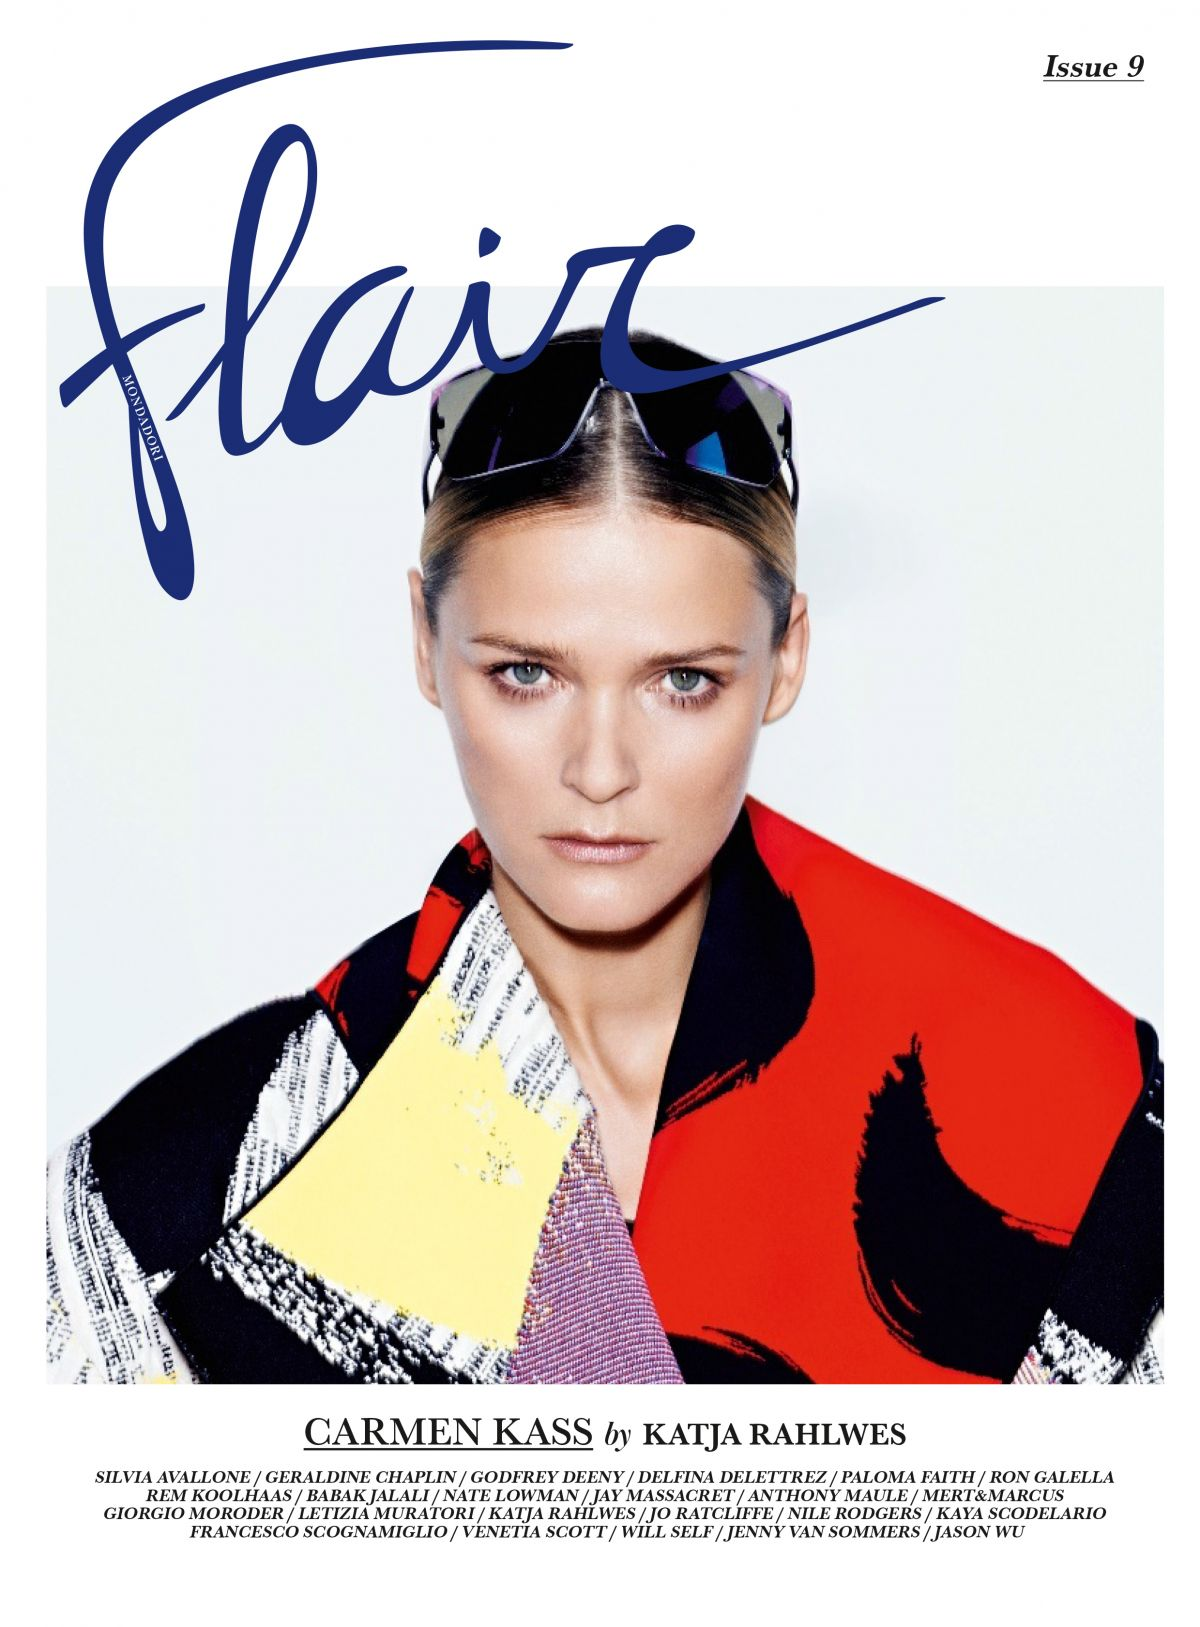 CARMEN KASS in Flair Magazine, March 2014 Issue